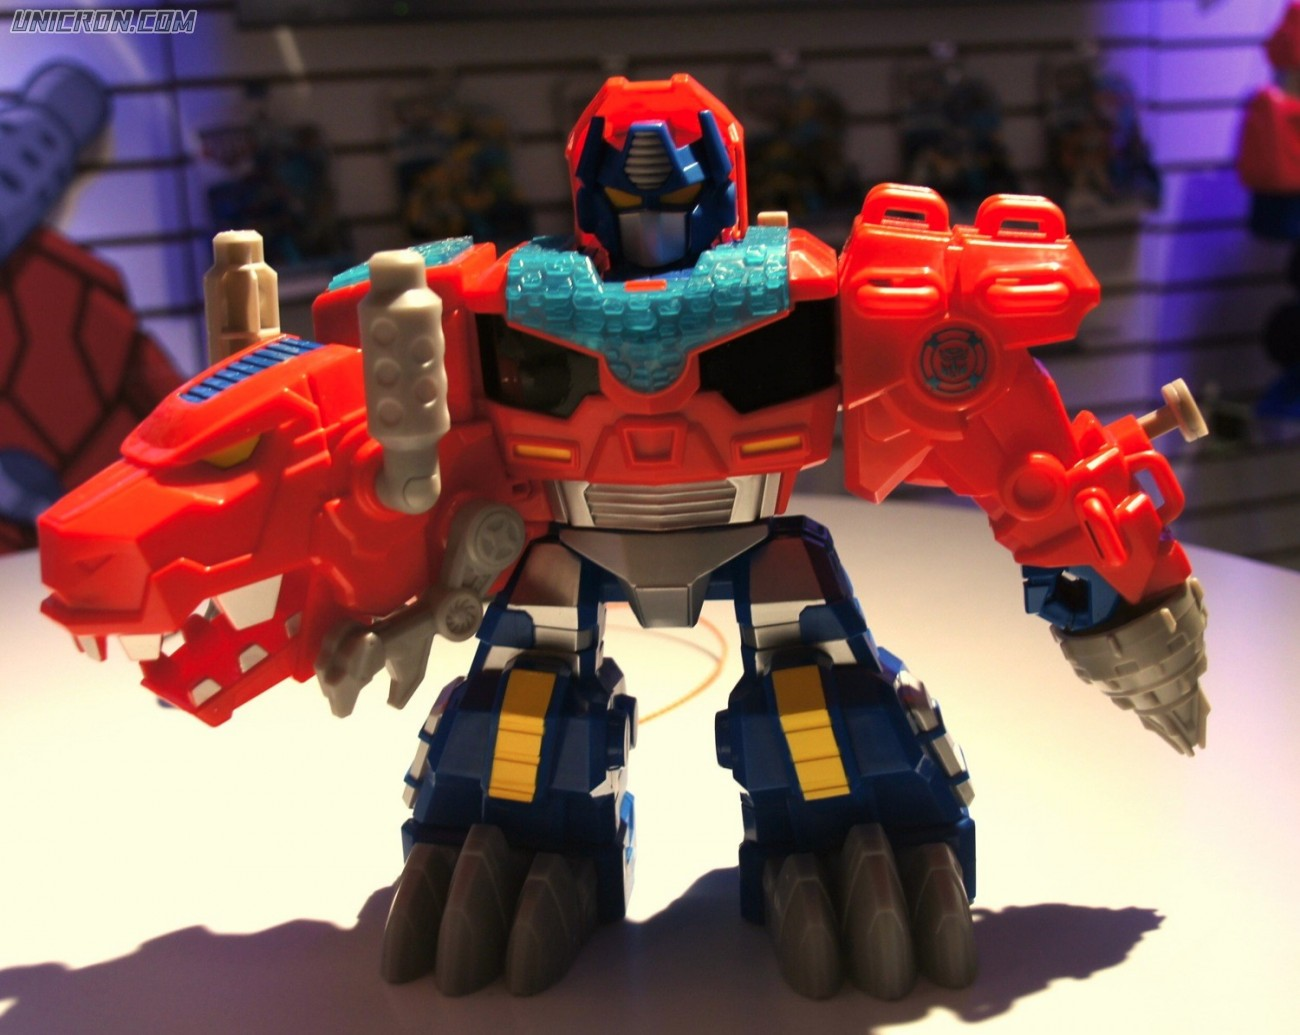 Transformers Rescue Bots Optimus Primal (Rescue Bots T-rex) toy